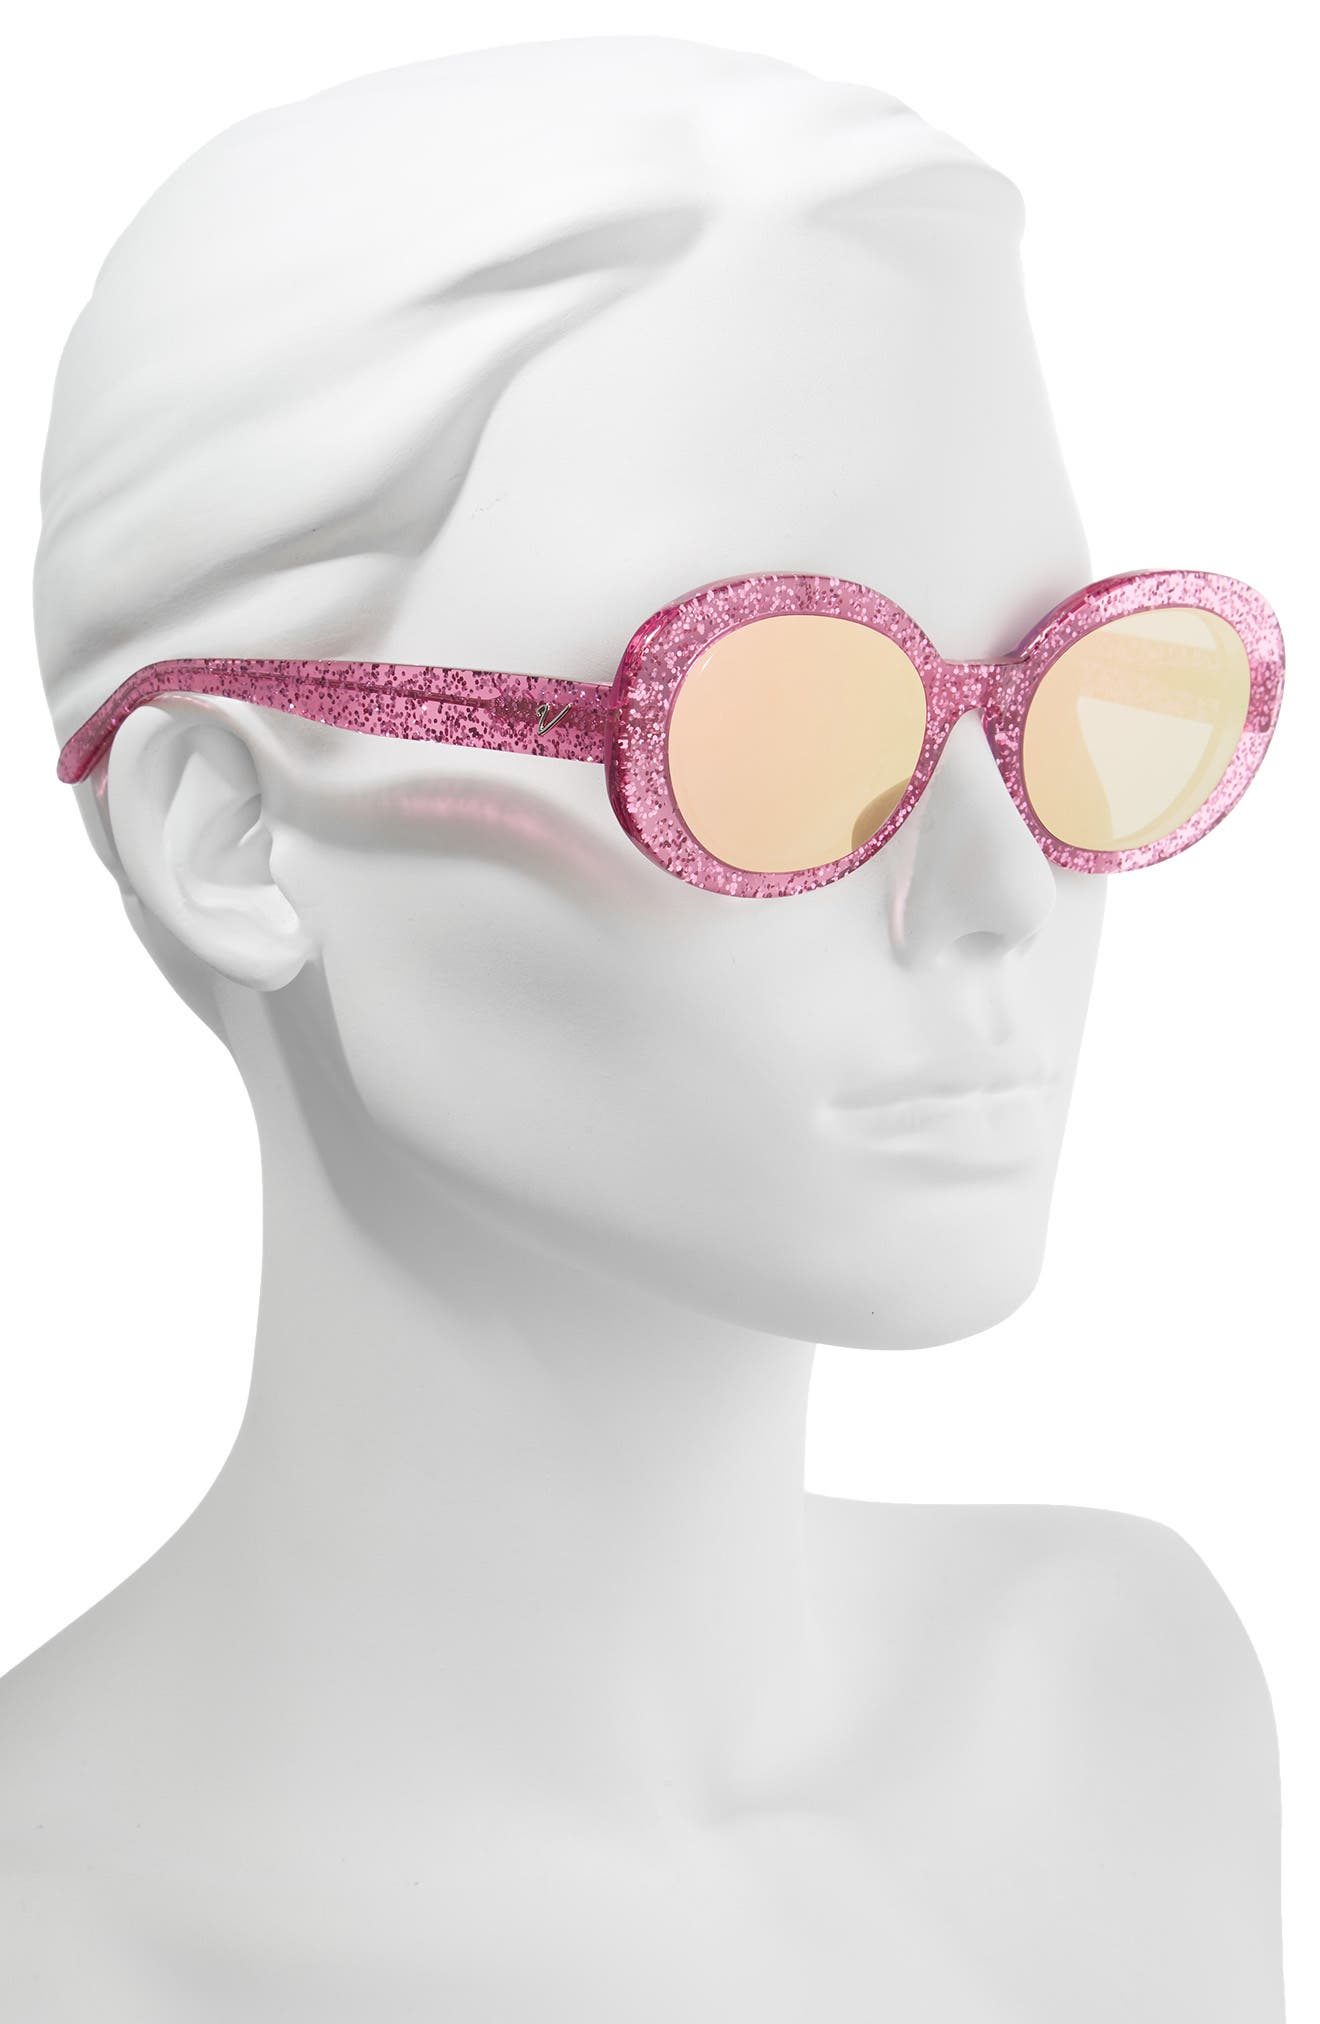 Selena 53mm Oval Sunglasses,                             Alternate thumbnail 2, color,                             Pink Glitter/ Pink Mirror